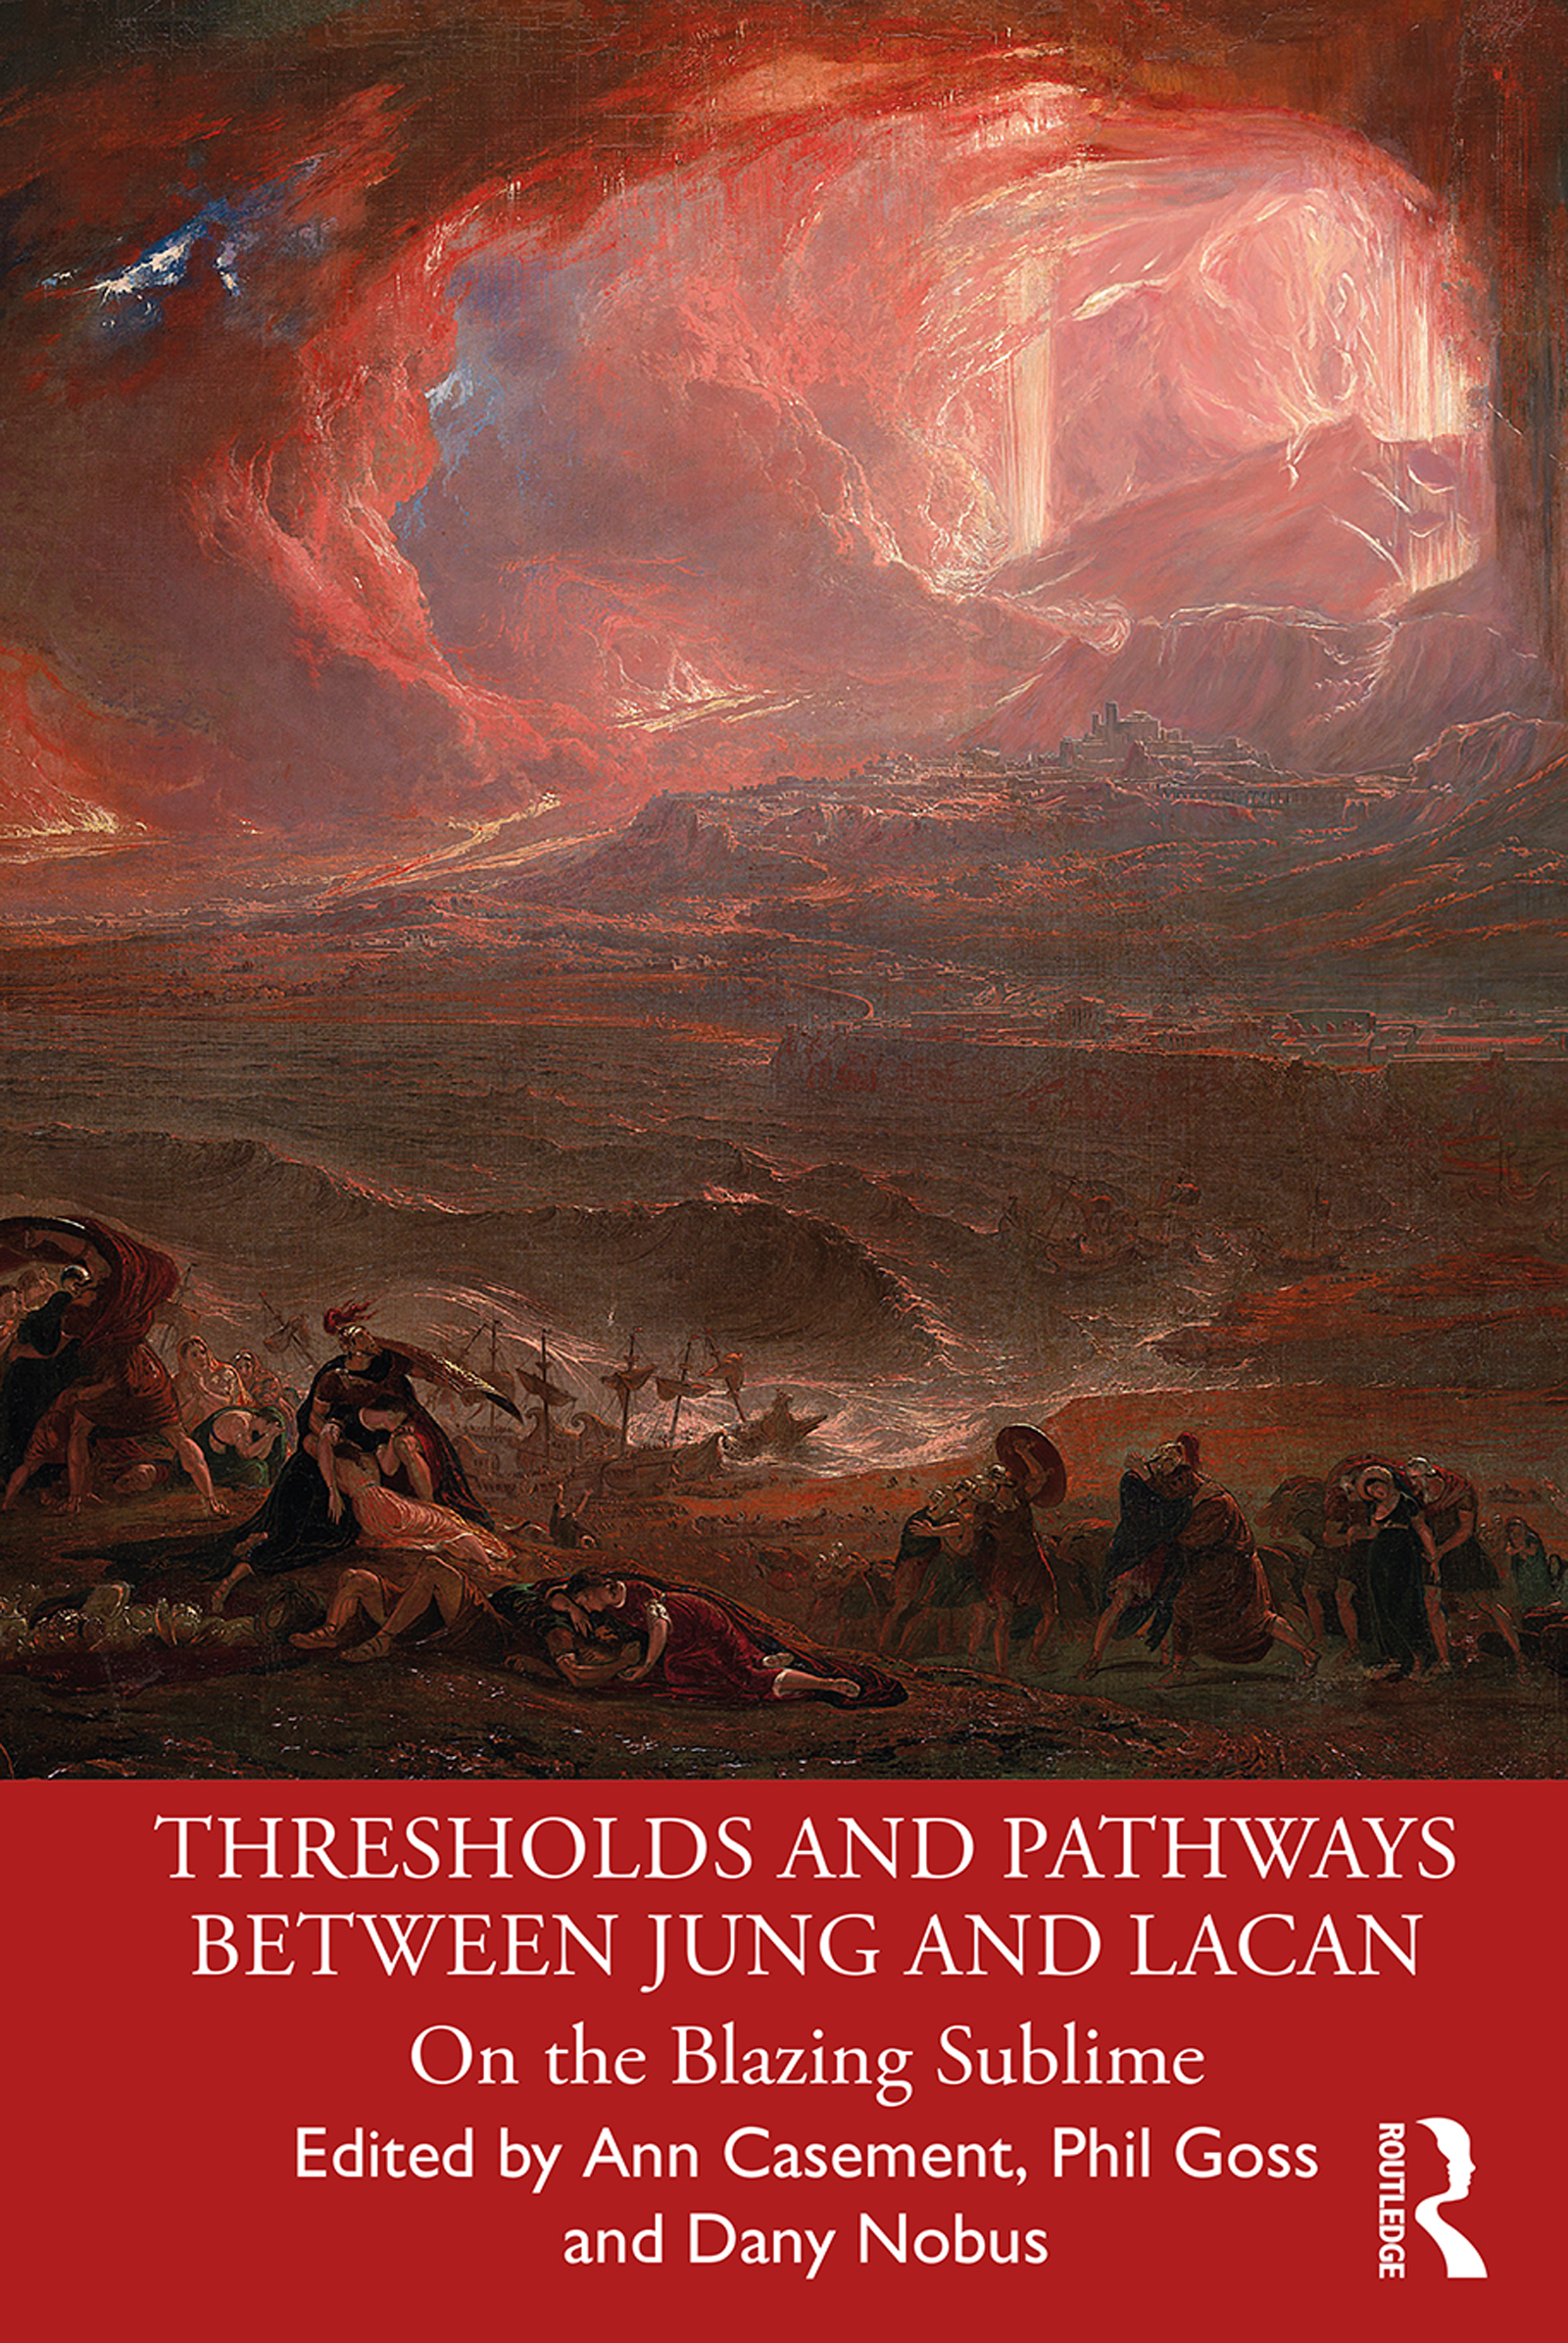 Thresholds and Pathways Between Jung and Lacan